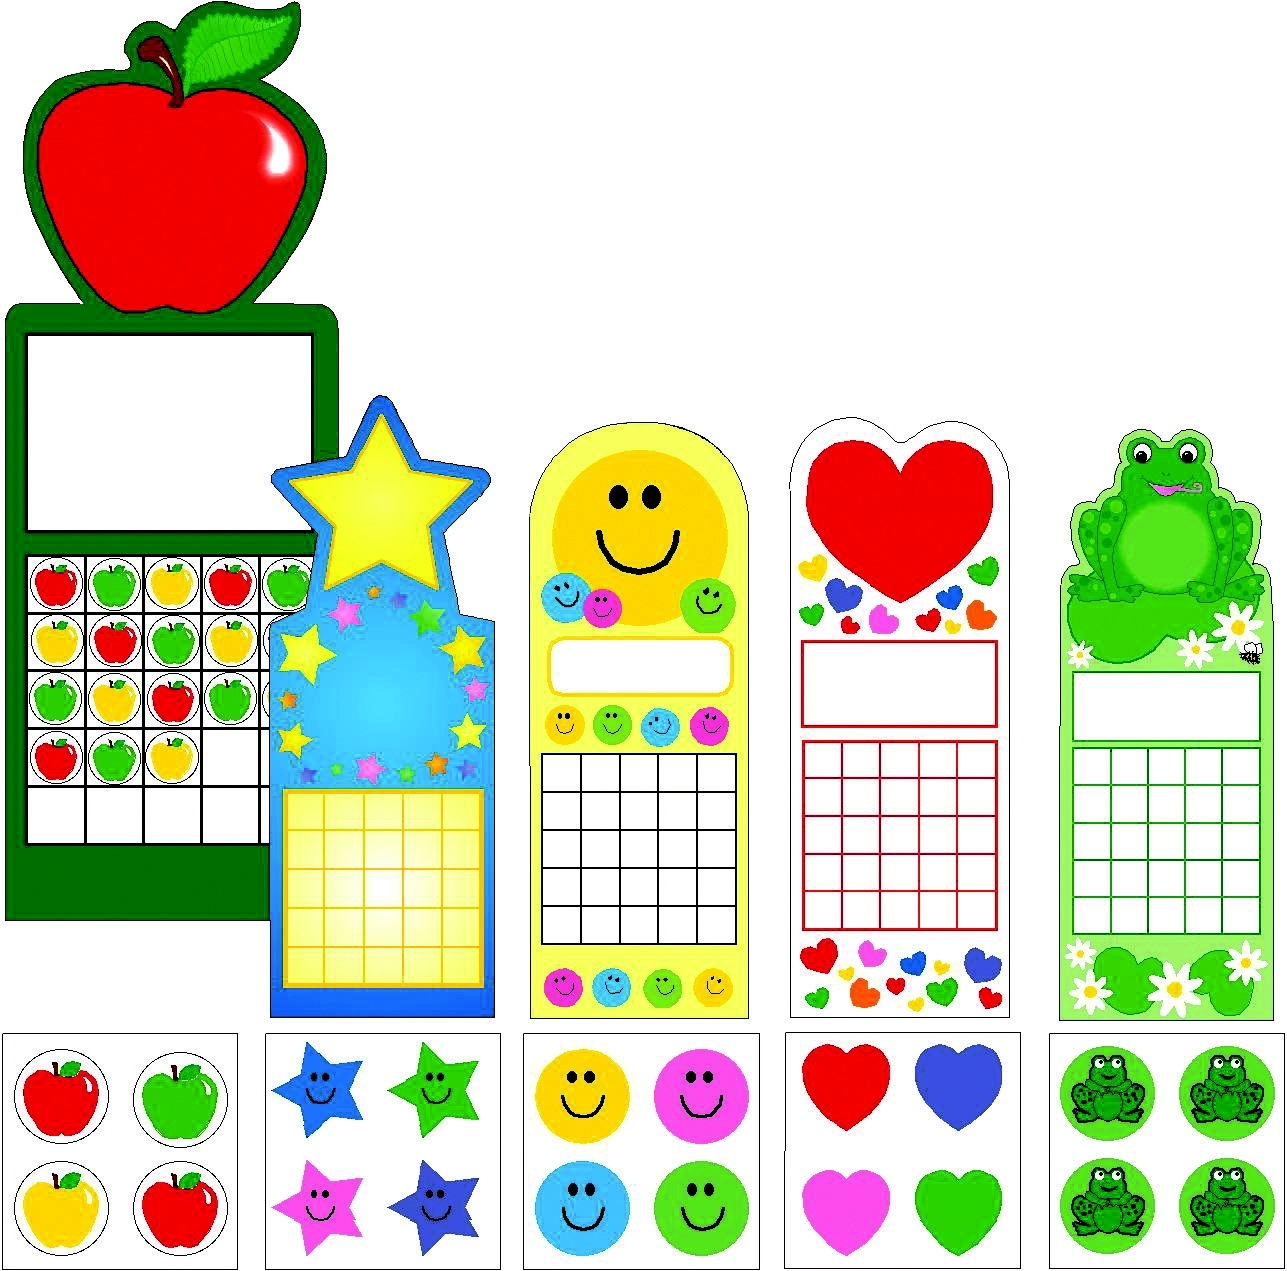 Learning: Supplies Teacher Helpers Awards & Incentives Trophies Awards & Medals - 090247 - Shapes Etc Shapes Etc 5 Seasonal Designs Personal Chart And Sticker Set; 2-3/4 X 7-1/2 In; Set Of 120 090247